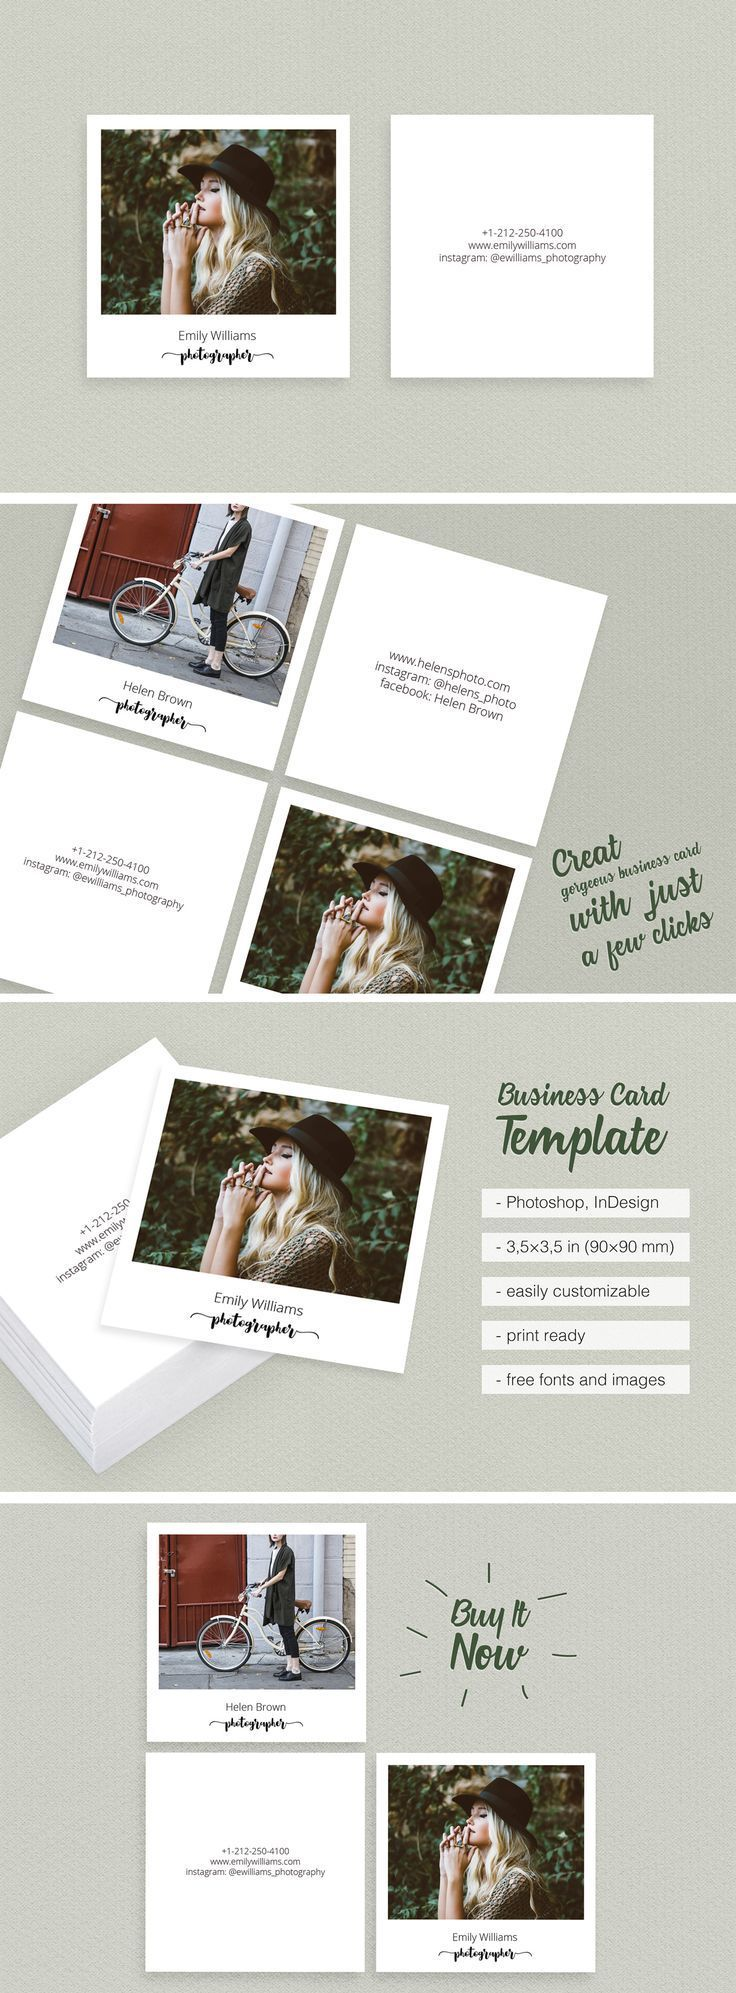 Get 8 Square Polaroid Business Card Download Digital Online It Is Creative Unique And Cool Visiting Template With Cal